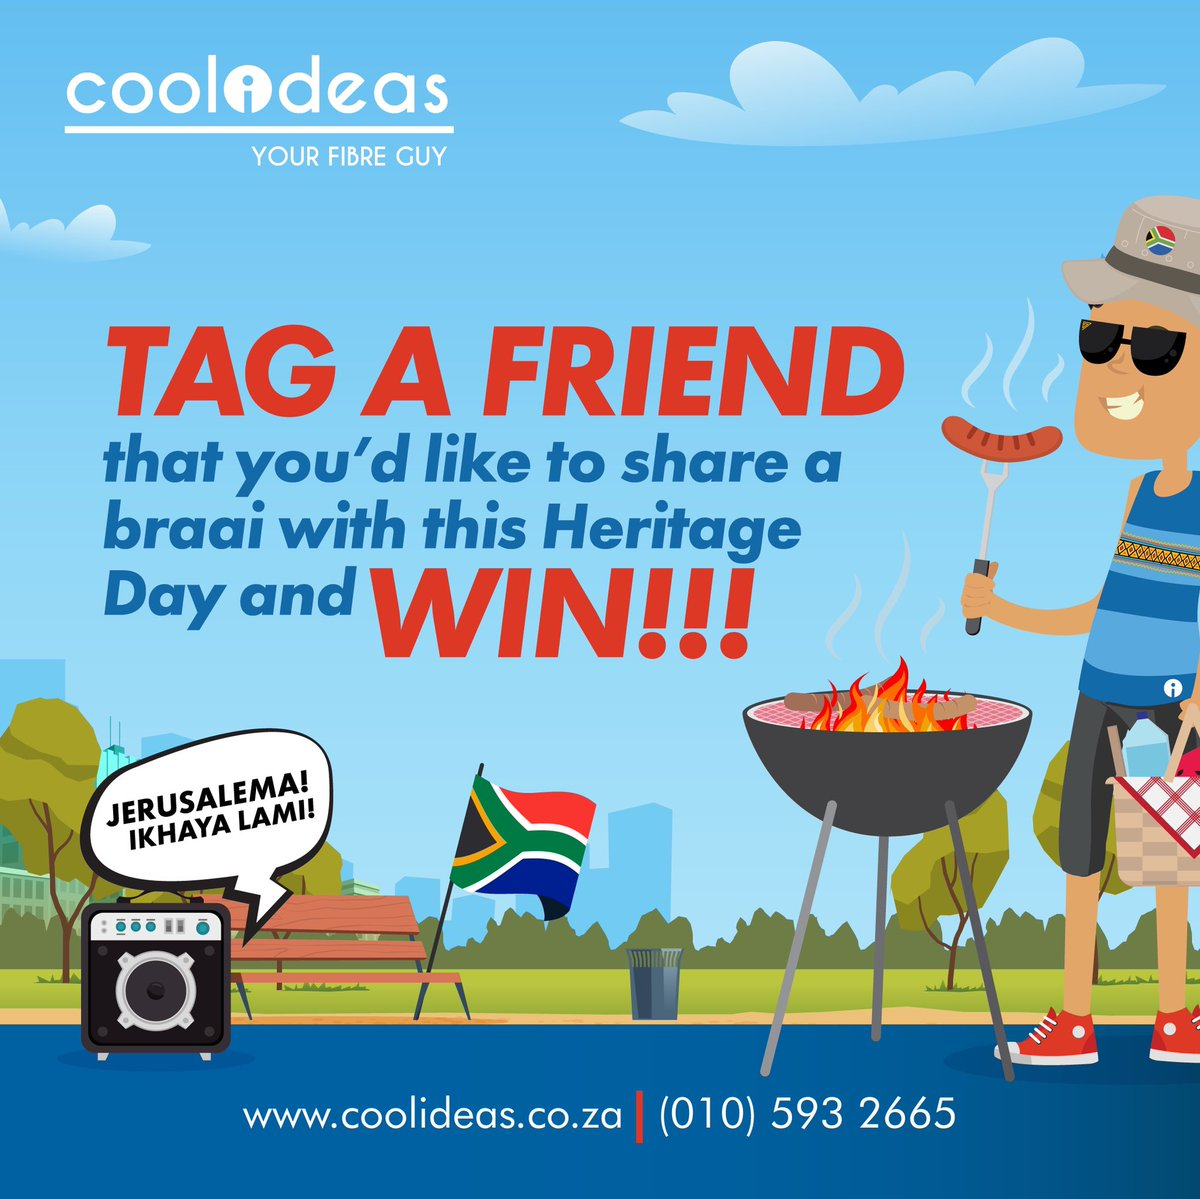 As South Africa embraces this new normal and moves into Lockdown Level 1, we want to know who you would like to share a braai with this Heritage Day? 🇿🇦  A friend, family member or even a neighbor? Mention one (or all of them) below, retweet this post and stand a chance to WIN!🏆 https://t.co/3rLuhe2pap